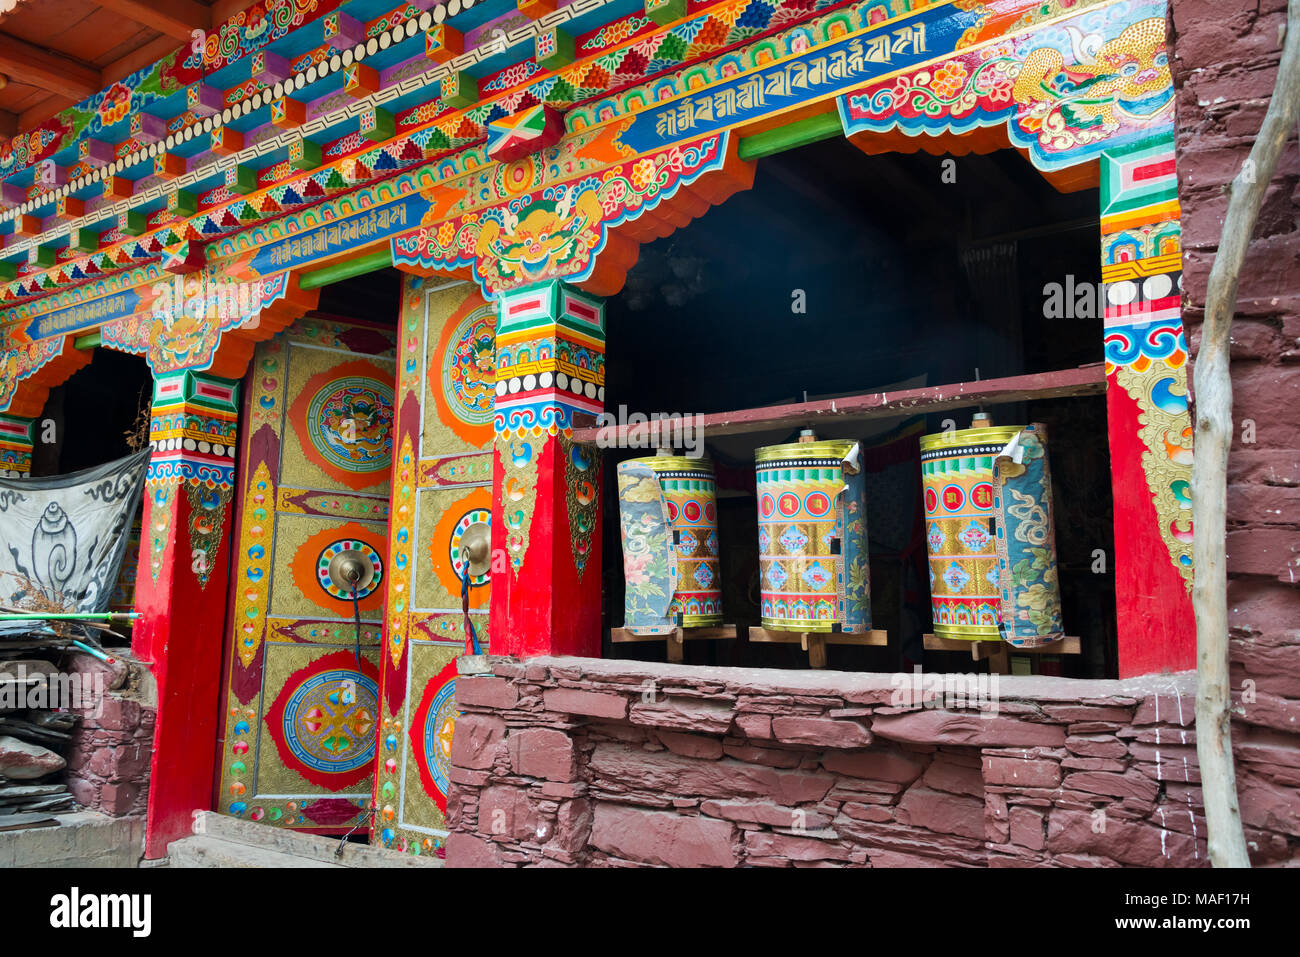 Praying wheels in Zhuokeji Headman's Village, Ngawa Tibetan and Qiang Autonomous Prefecture, western Sichuan, China - Stock Image